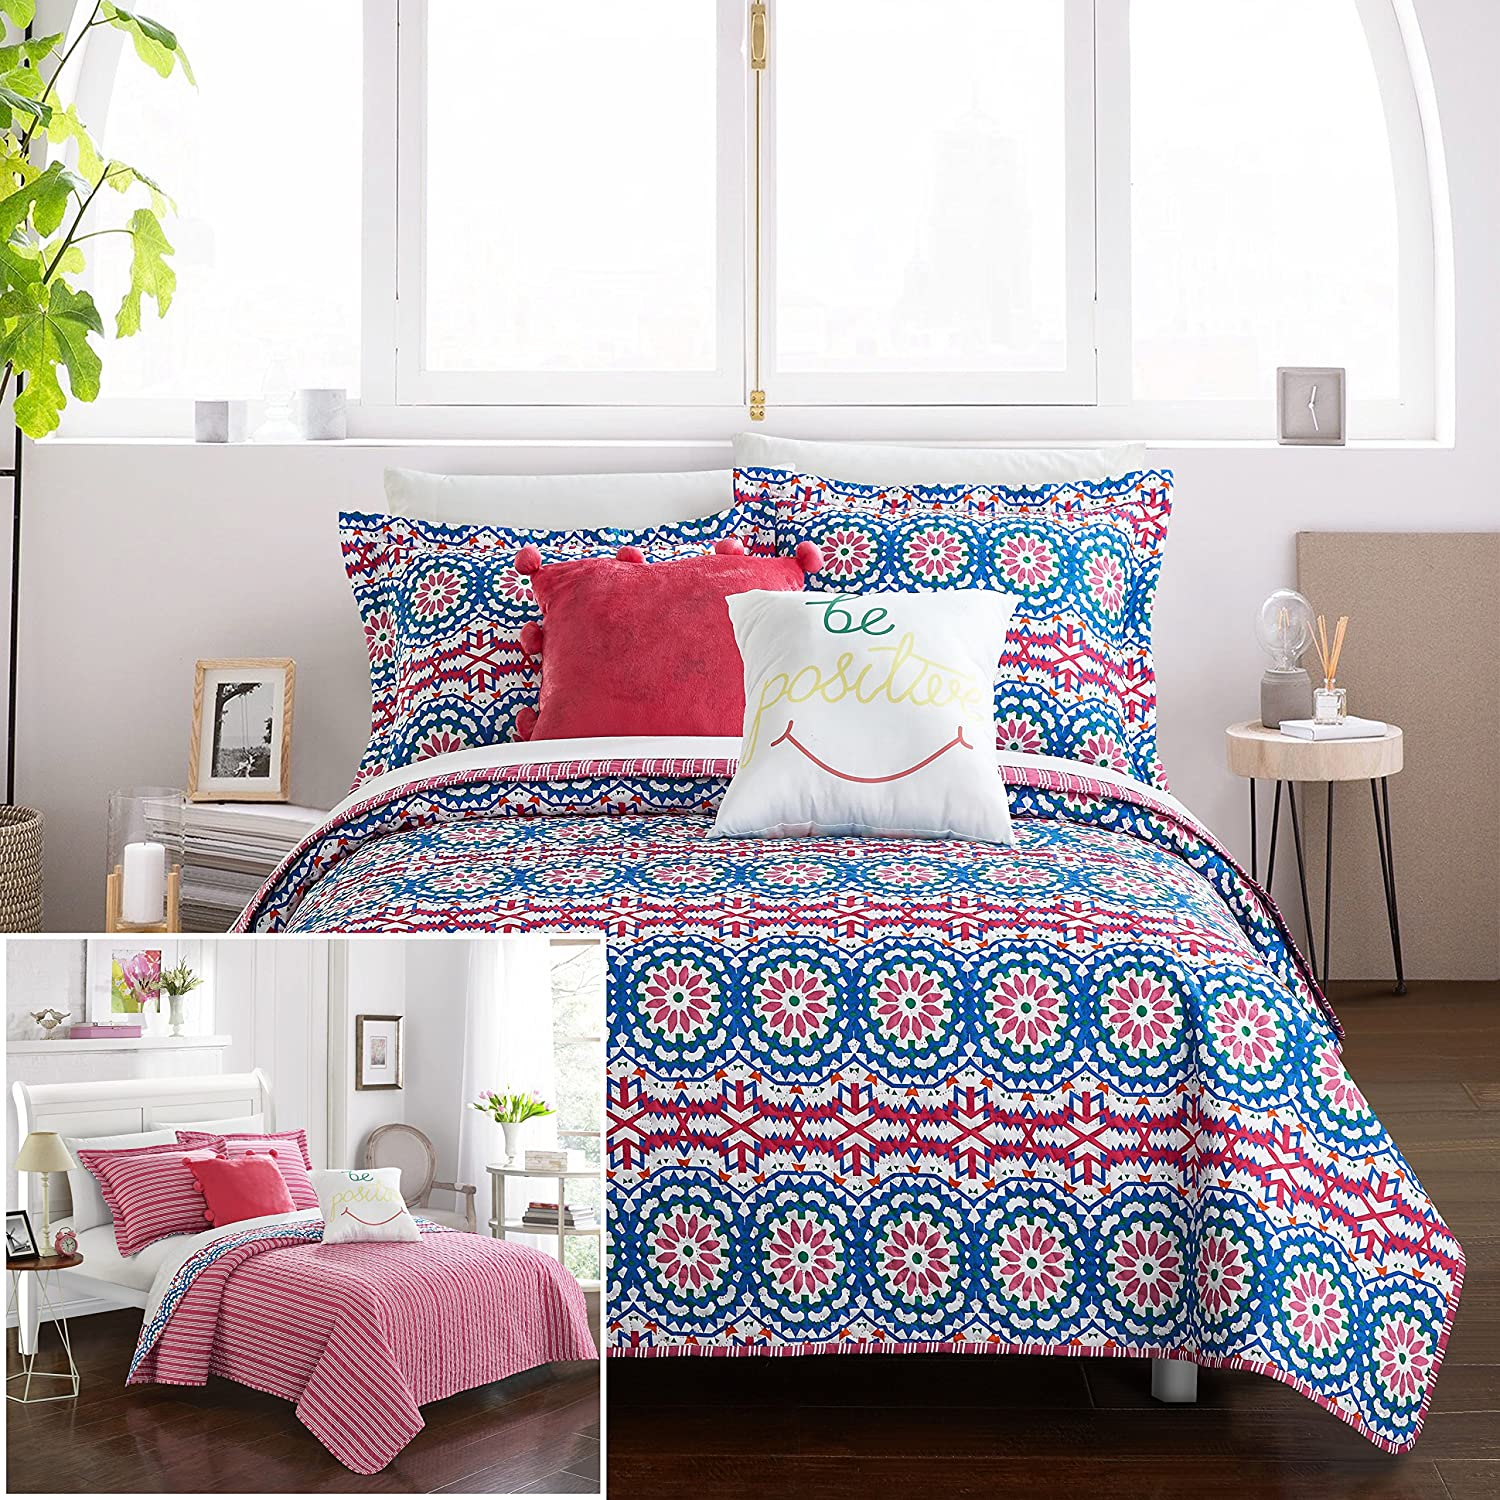 Chic Home 9 Piece JoJo Reversible Contemporary Floral Bohemian Printed with Stripe Reversible Bed in a Bag, Luxury Pillows and sheetts Set Included. Full Comforter Set Fuschia